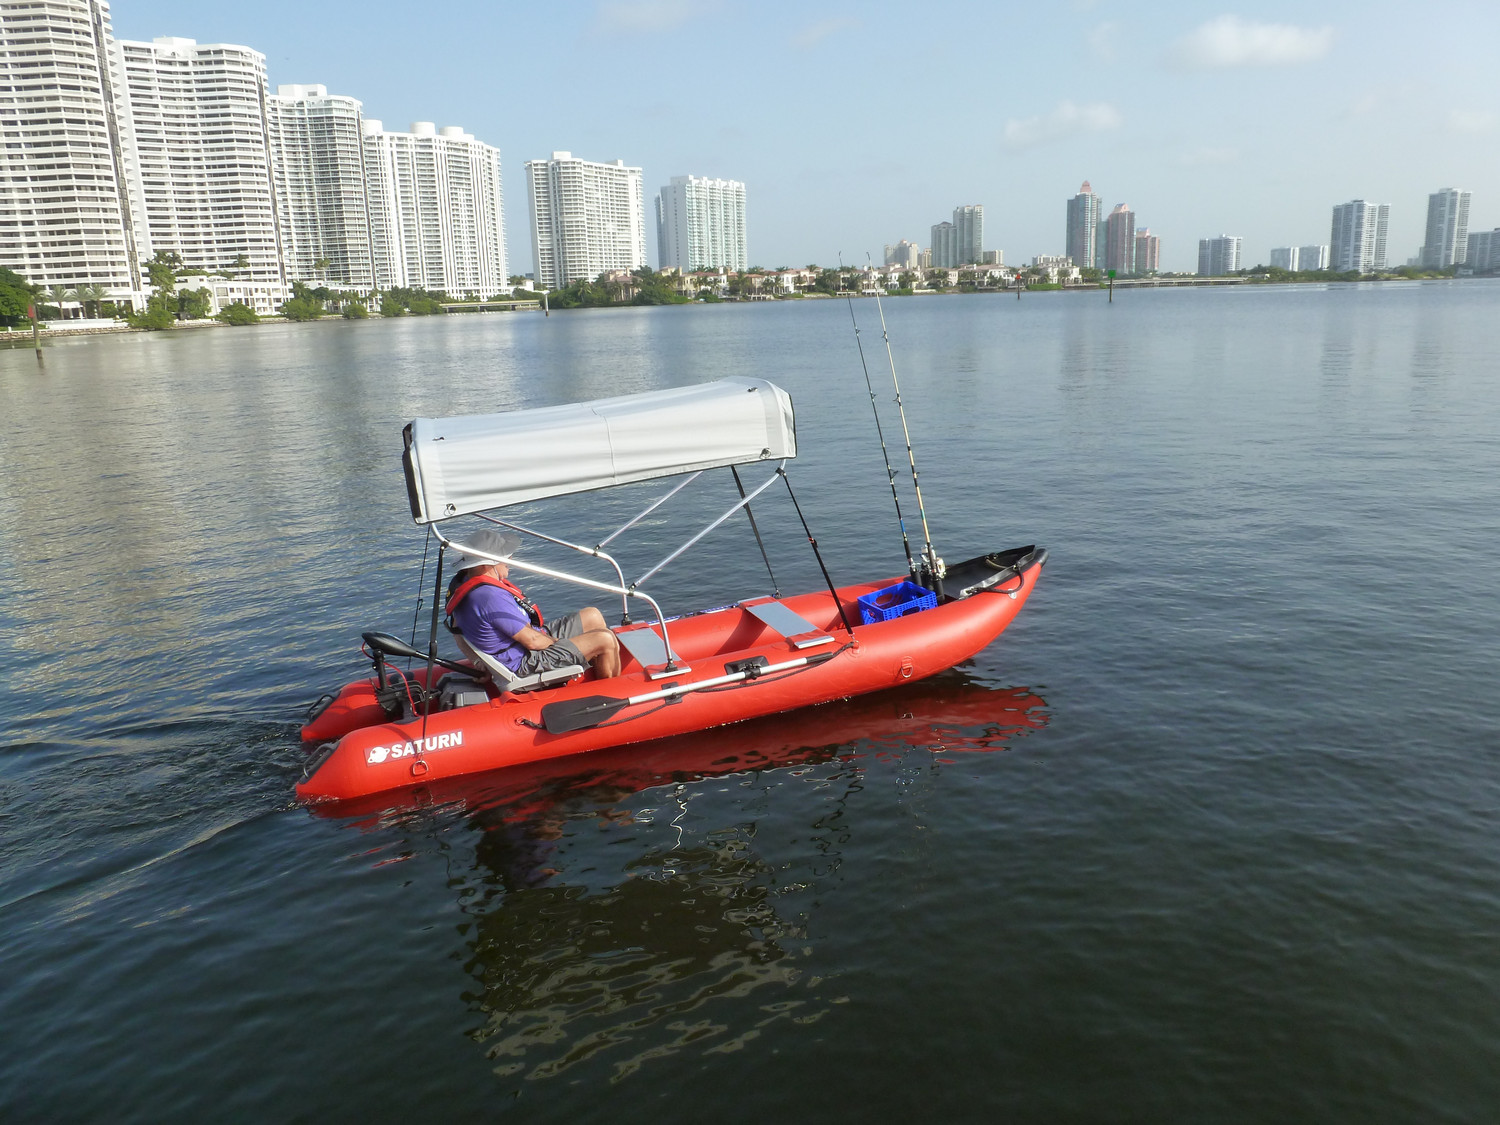 Customer Photo - 14' Saturn KaBoat SK430 - Upgraded to Include Bimini Top